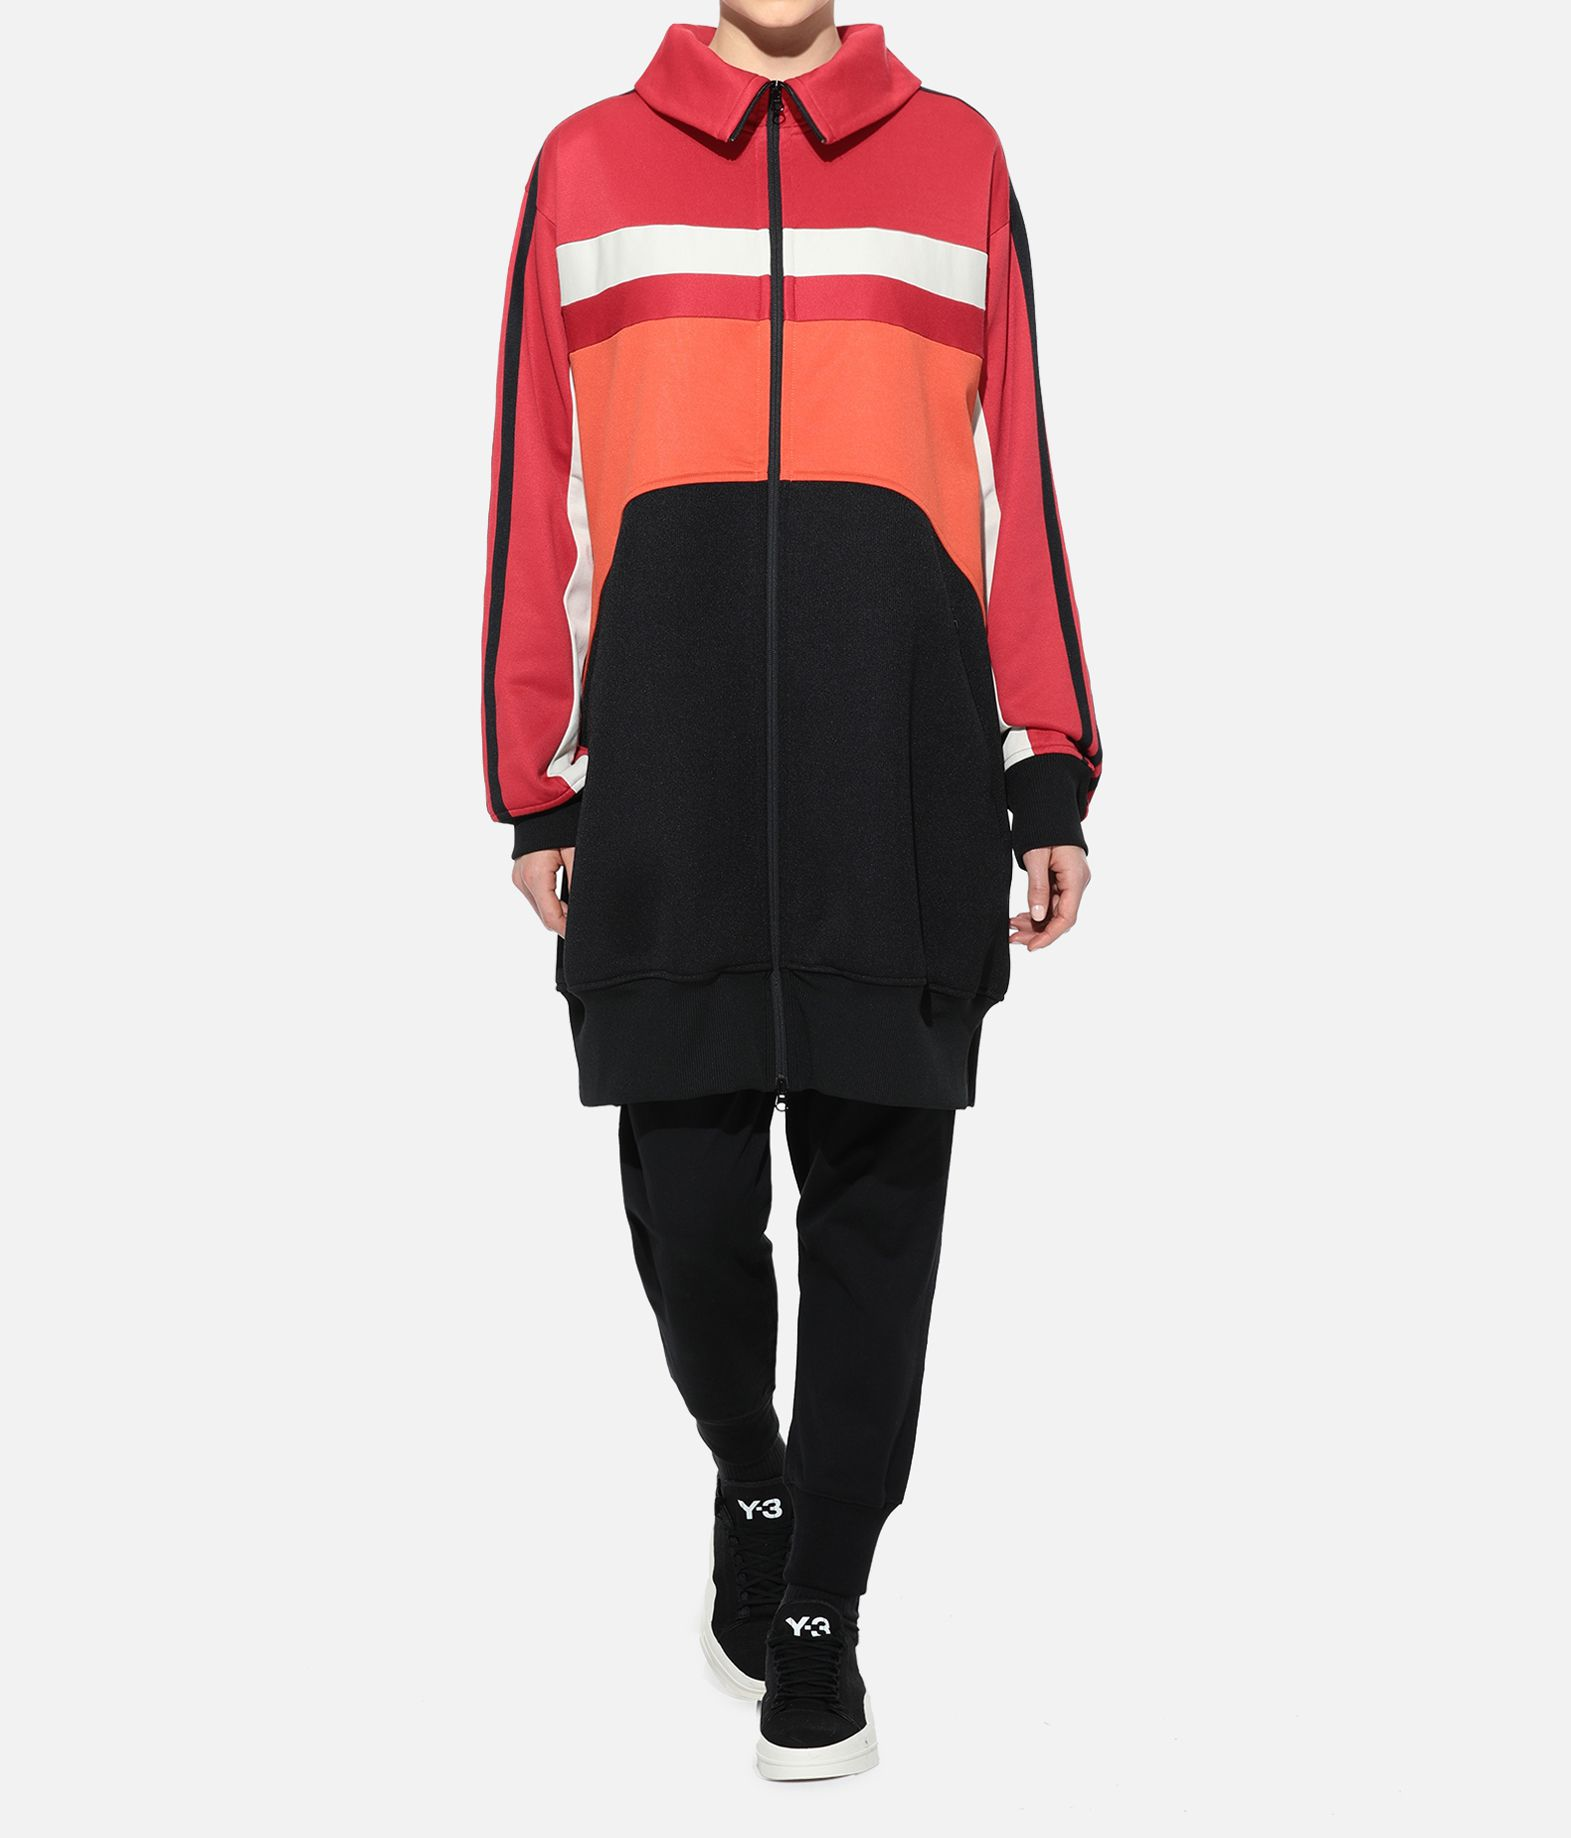 Y-3 Y-3 OVERSIZED GRAPHIC TRACK TOP Track top Woman a